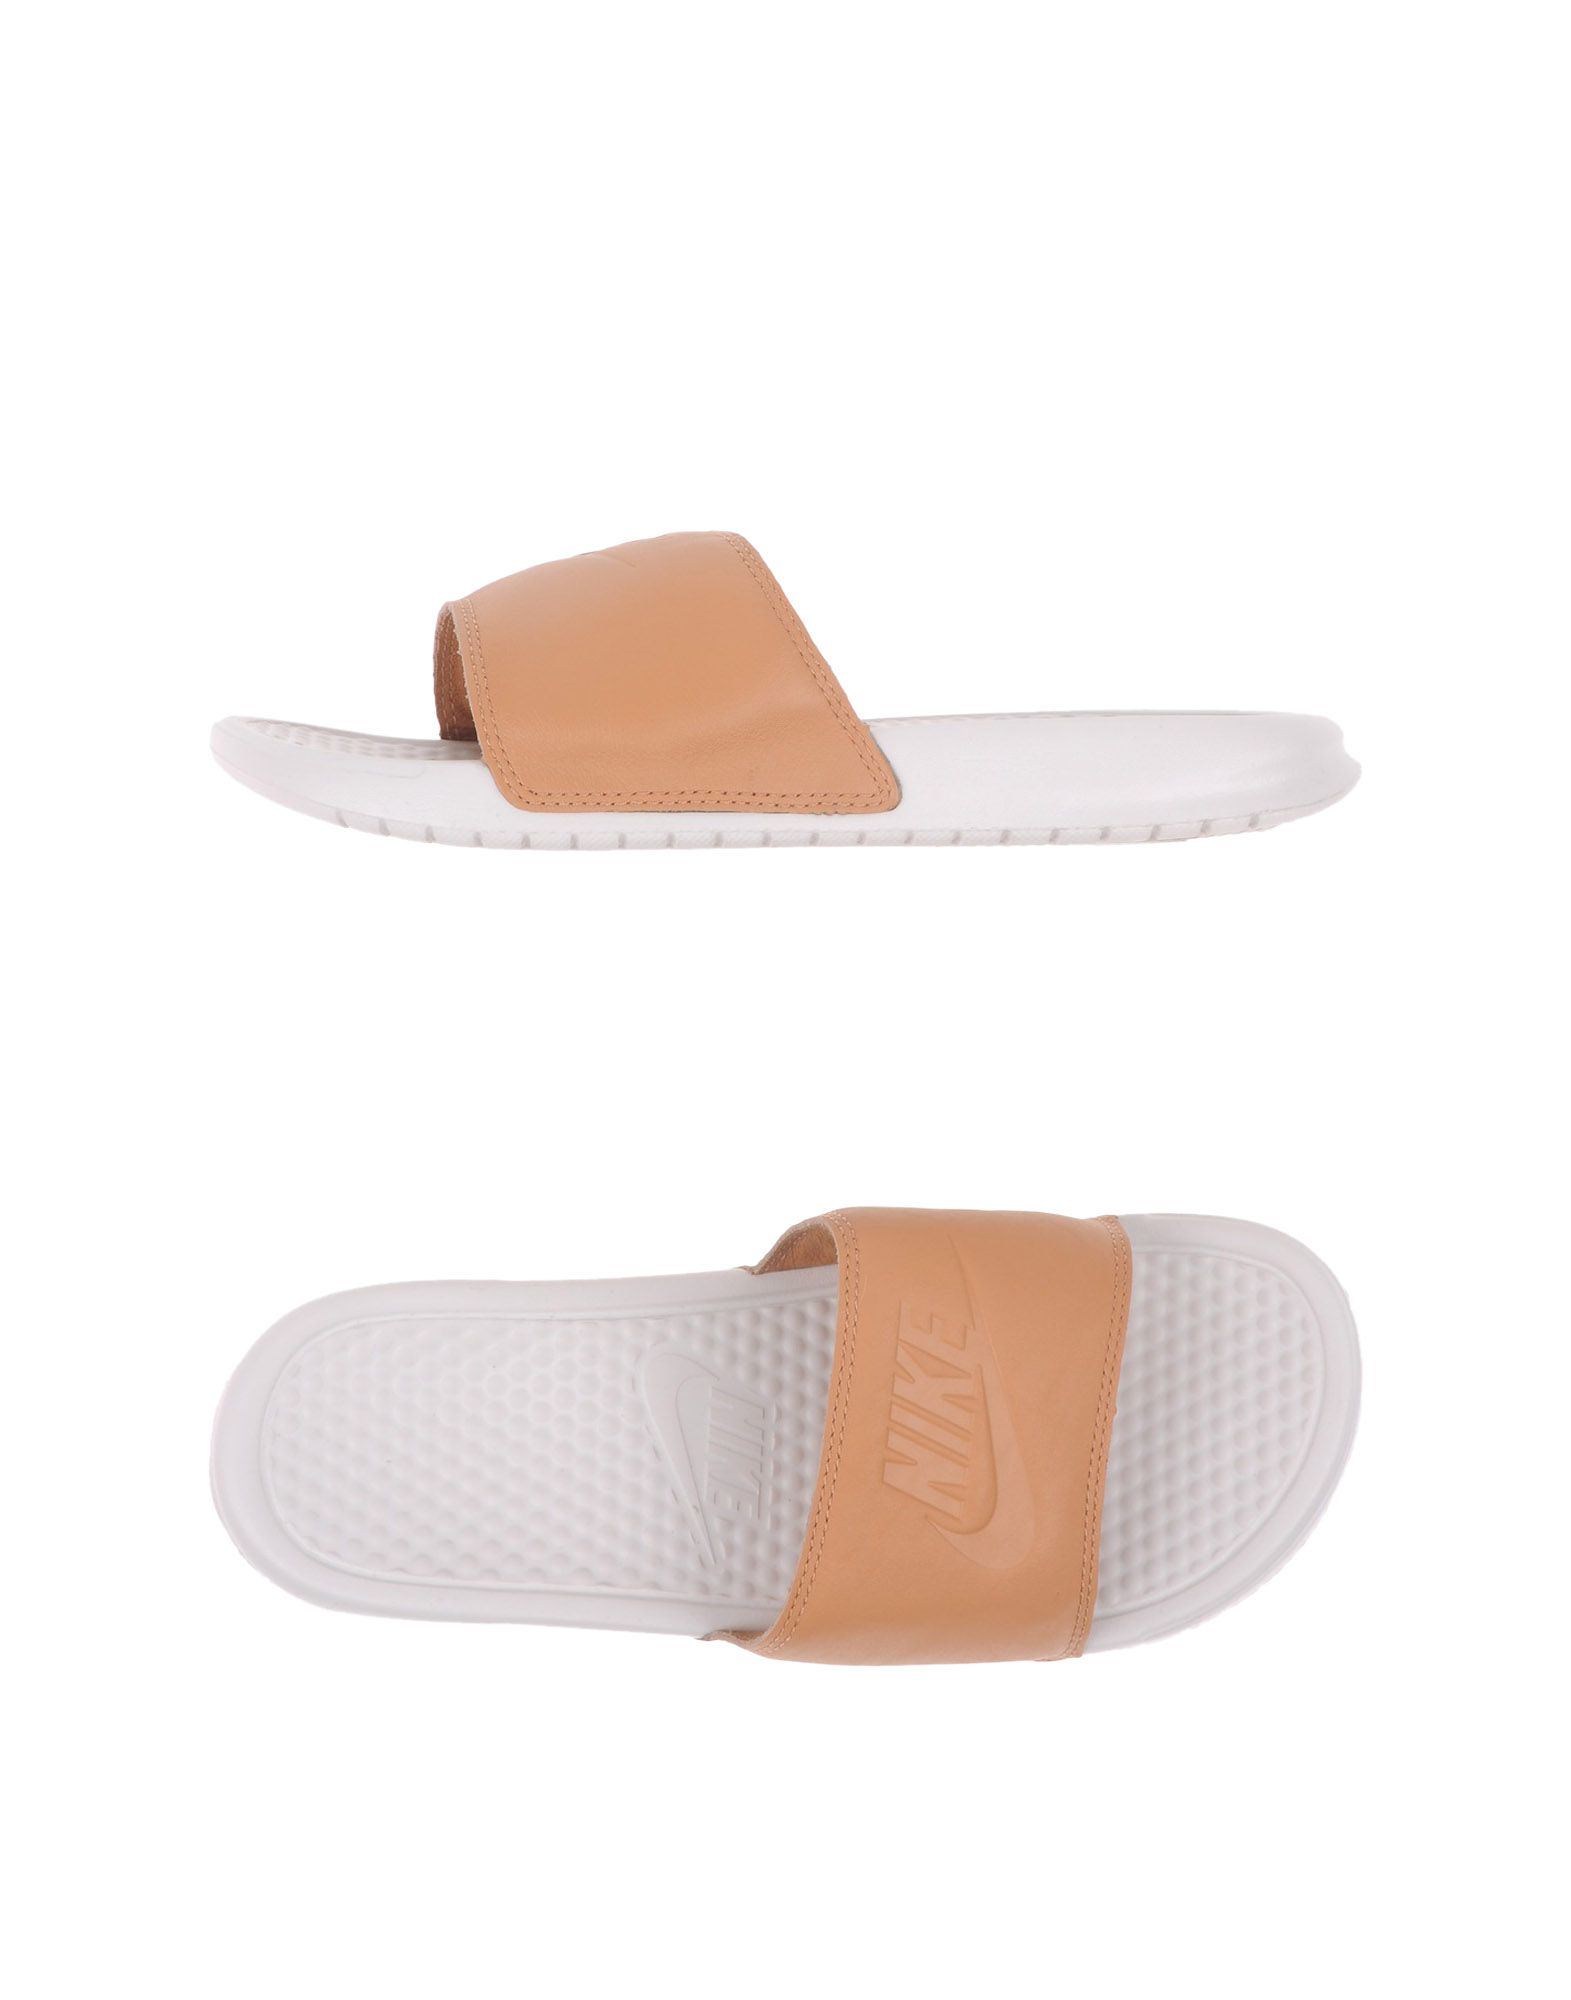 ff16c9e8347d ... official nike sandals in natural for men lyst d8cc5 11084